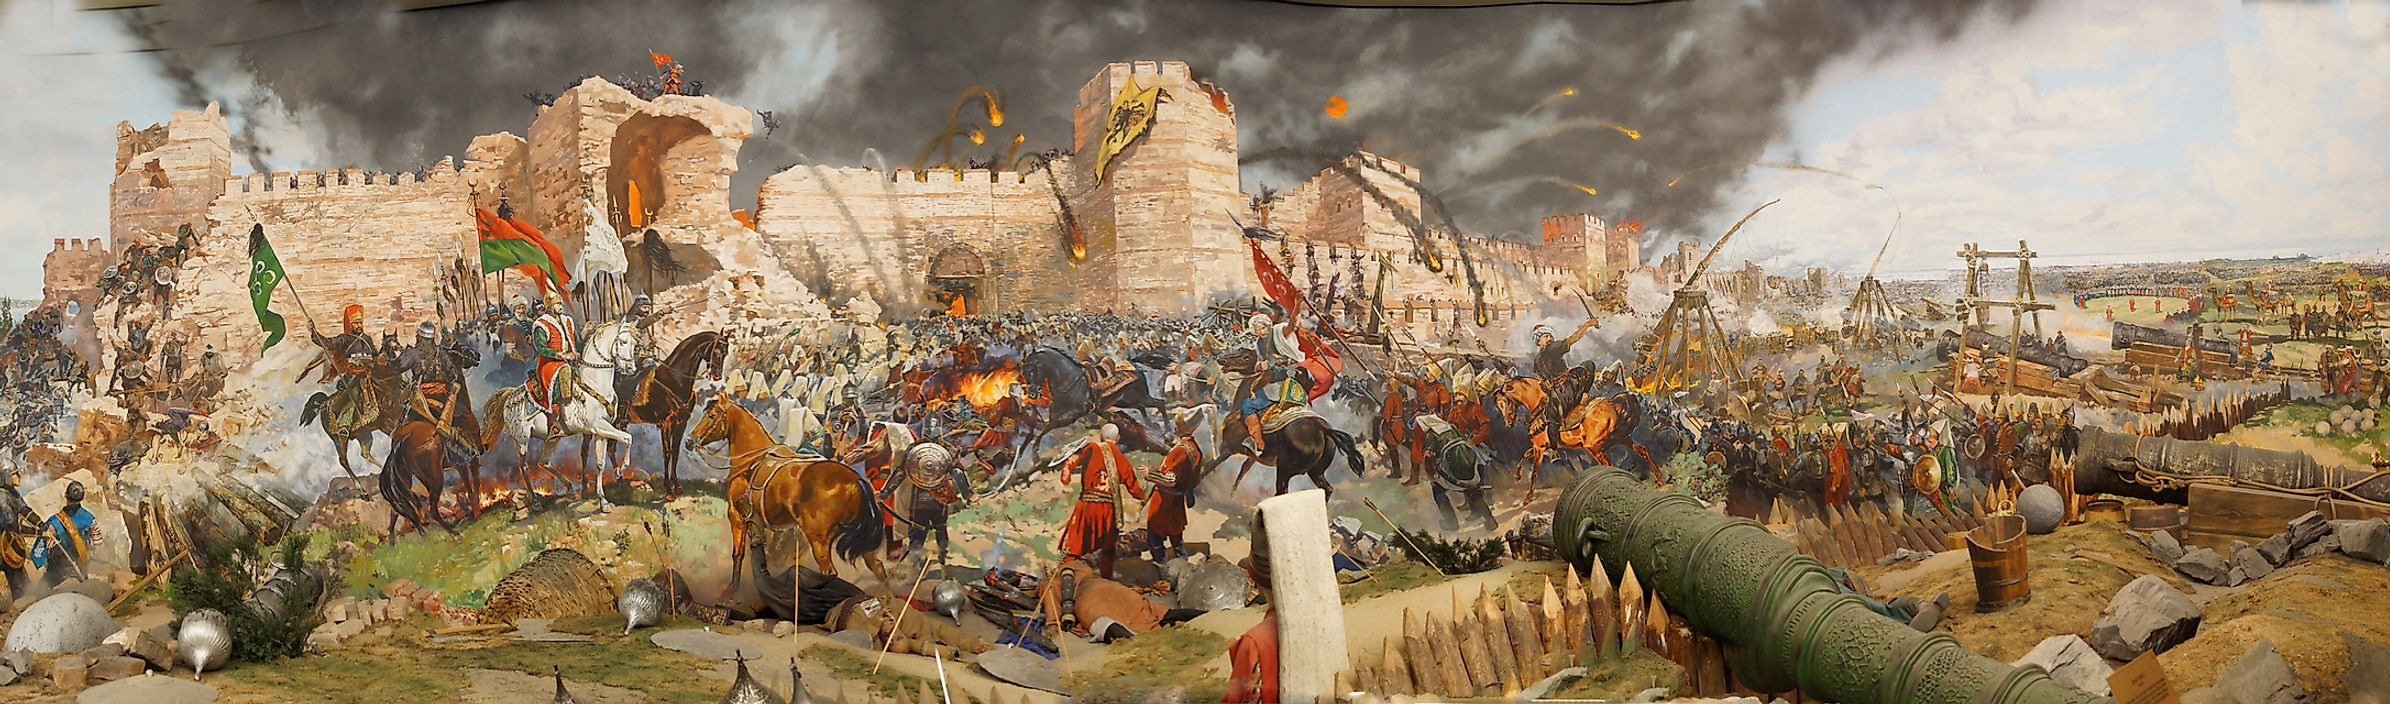 The fall of Constantinople in 1453, now present day Istanbul, Turkey, was a critical point of the Late Middle Ages.